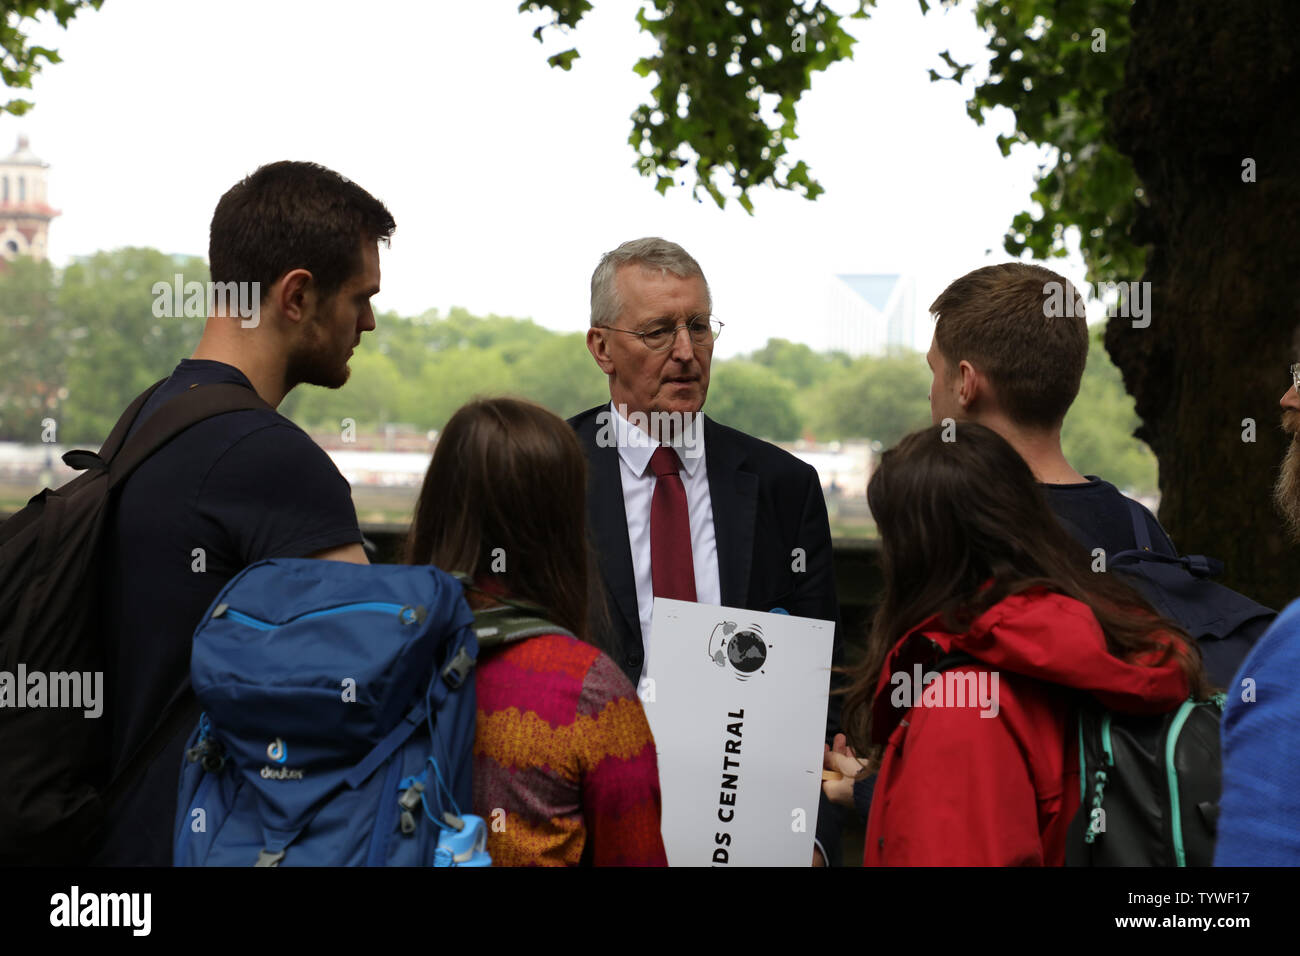 London, UK. 26th June 2019. British Member of Parliament Hilary Benn talking with participants of a mass lobby of MP's around the Houses of Parliament in London, organised by The Climate Coalition and Greener UK, pressing for more urgent and bold action on climate change. Credit: Joe Kuis / Alamy News - Stock Image